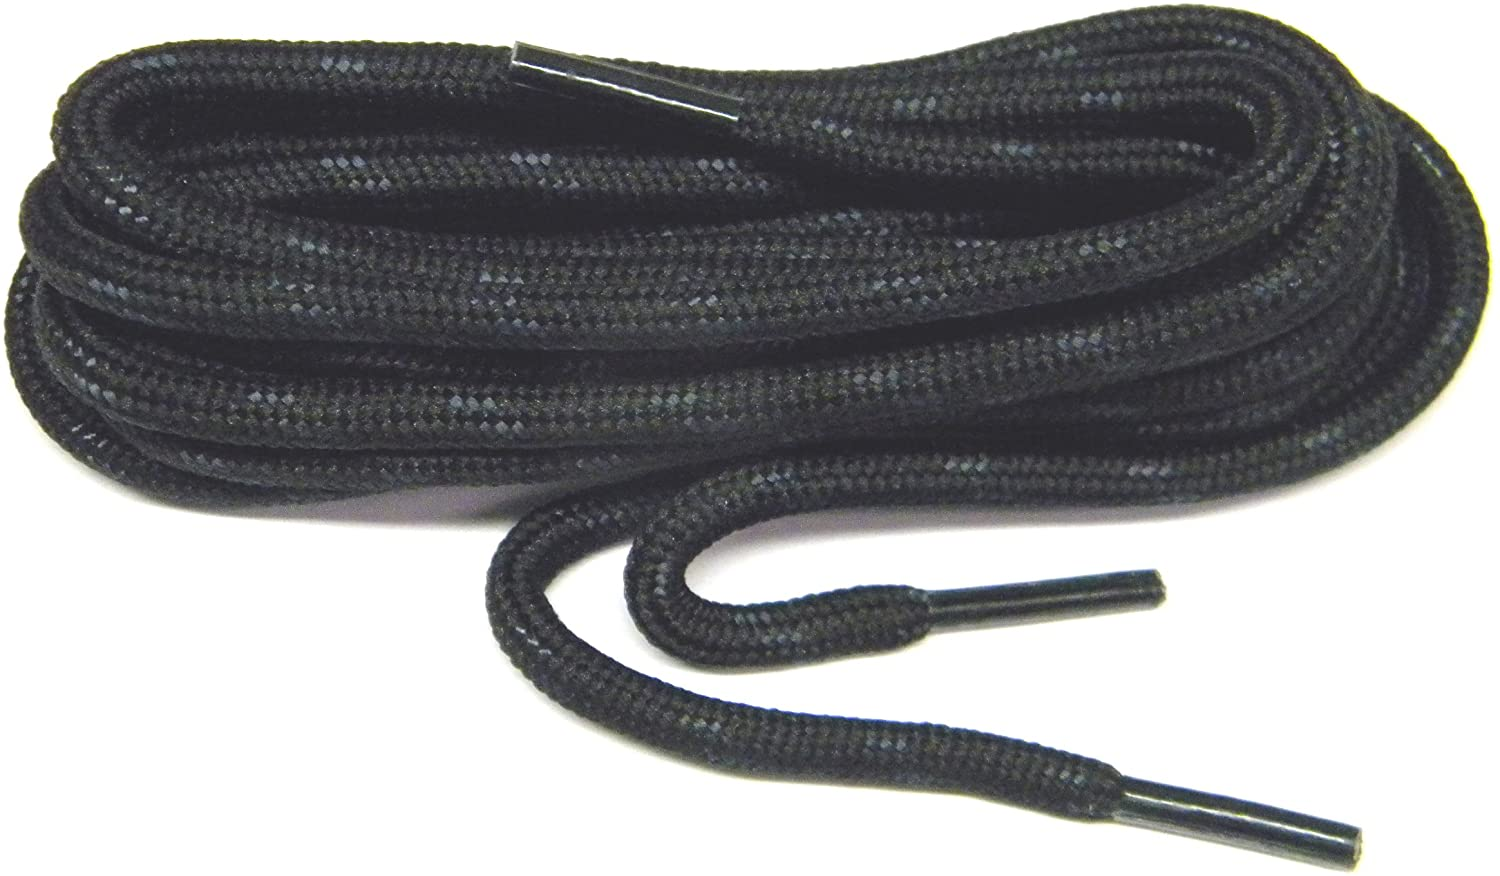 2 Pair Pack proTOUGH 6mm thick round boot shoelaces reinforced with kevlar